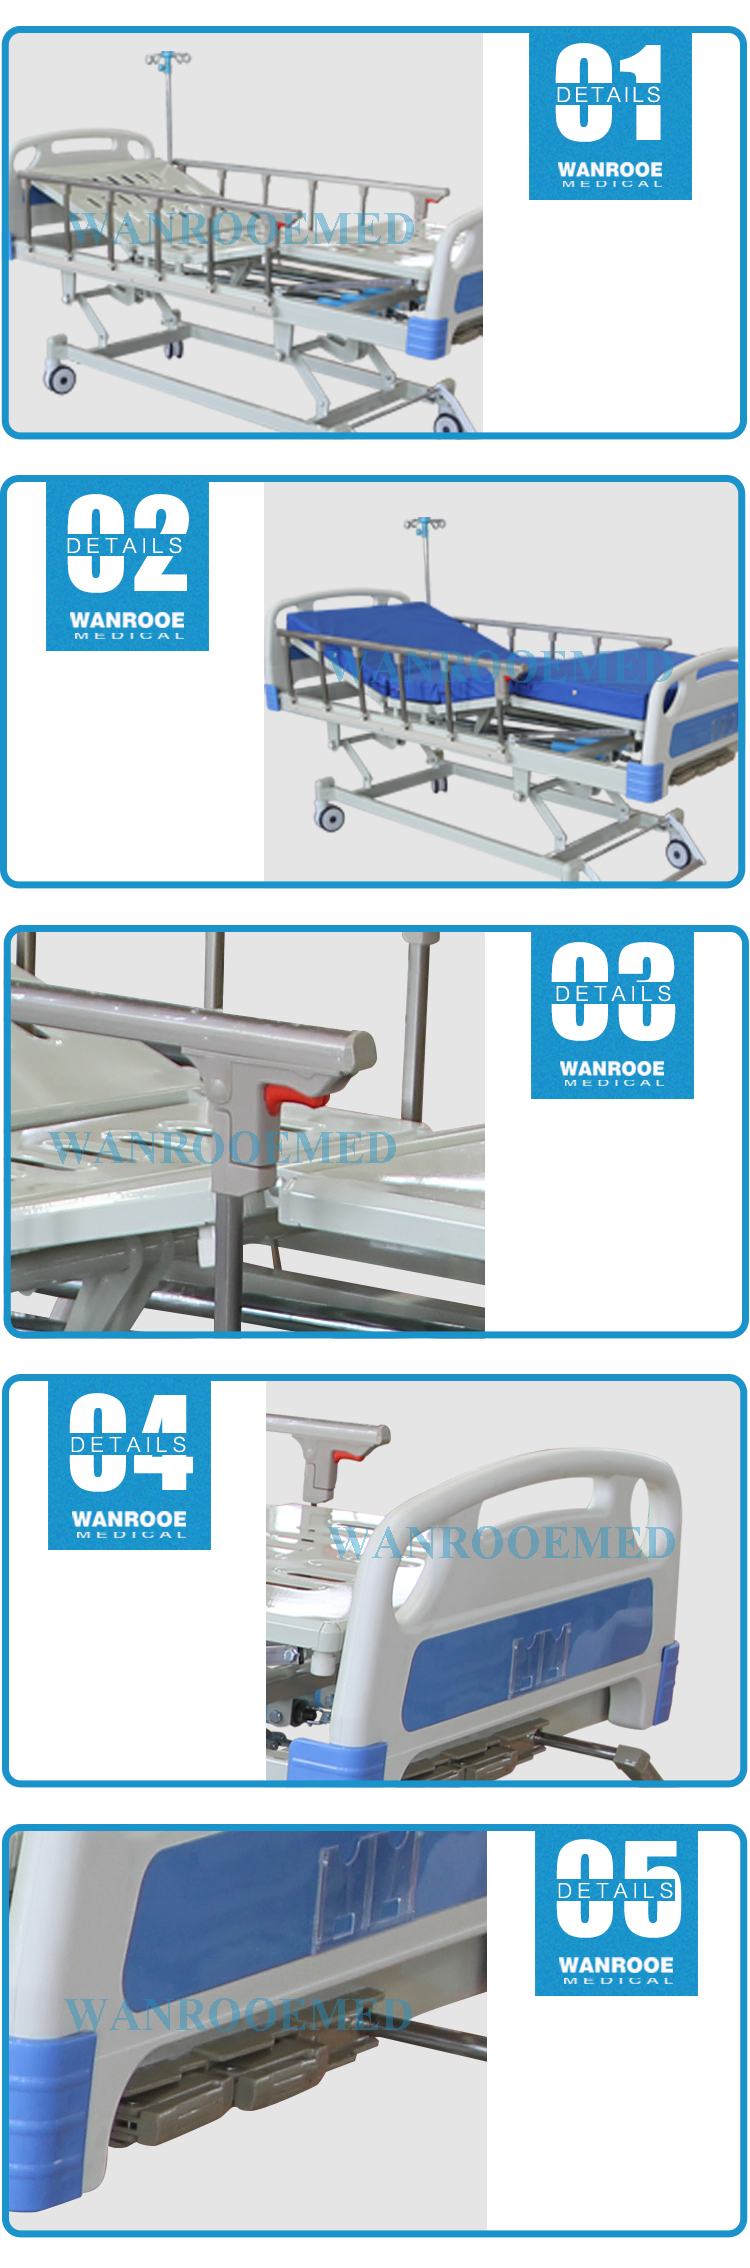 Manual Medical Bed, Manual Hospital Bed, Three Function Medical Bed, 3 Function Hospital Bed, Portable Hospital Bed